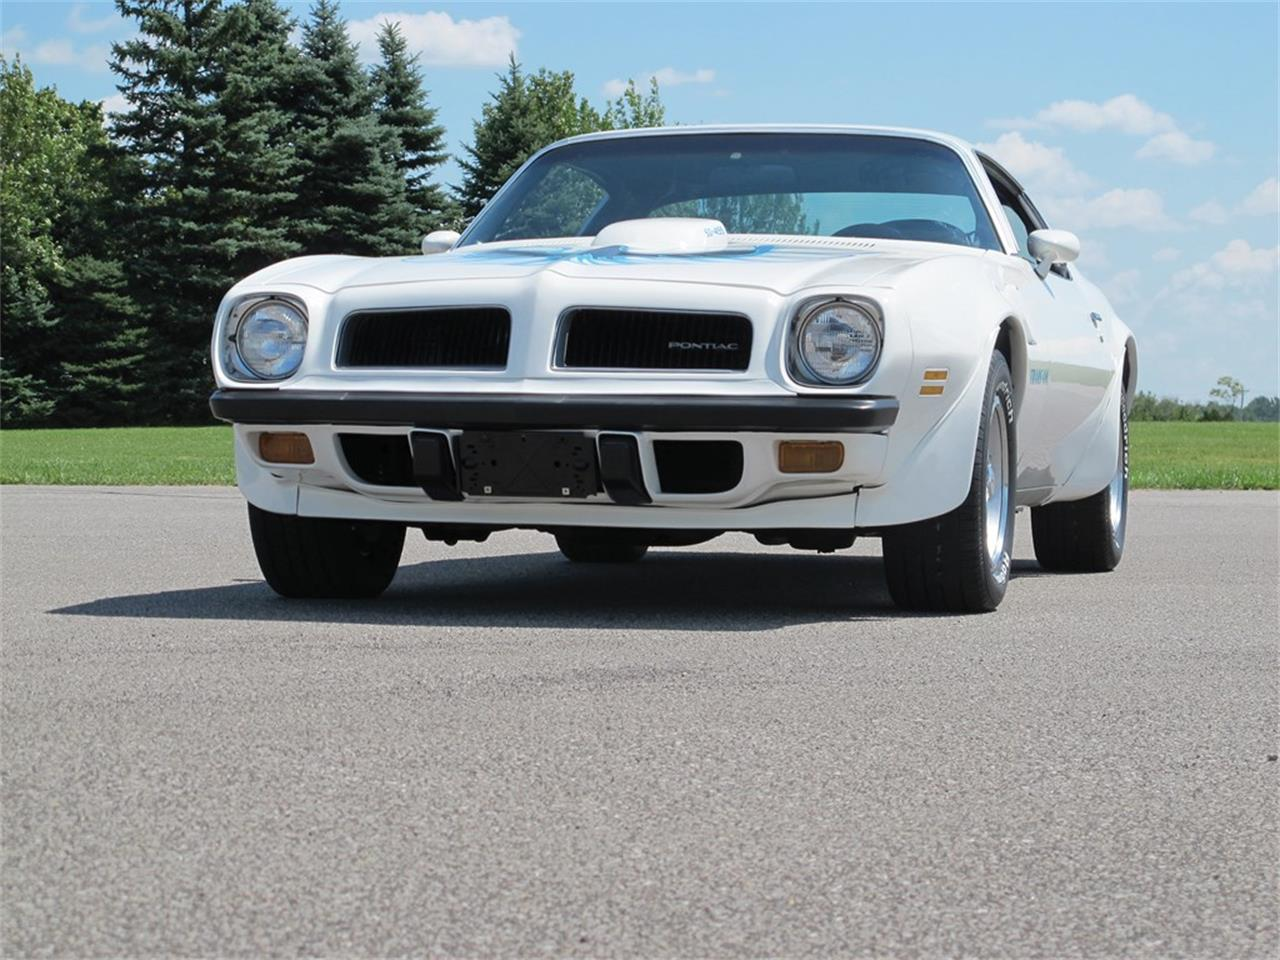 1974 Pontiac Firebird Trans Am for sale in Fort Lauderdale, FL – photo 12